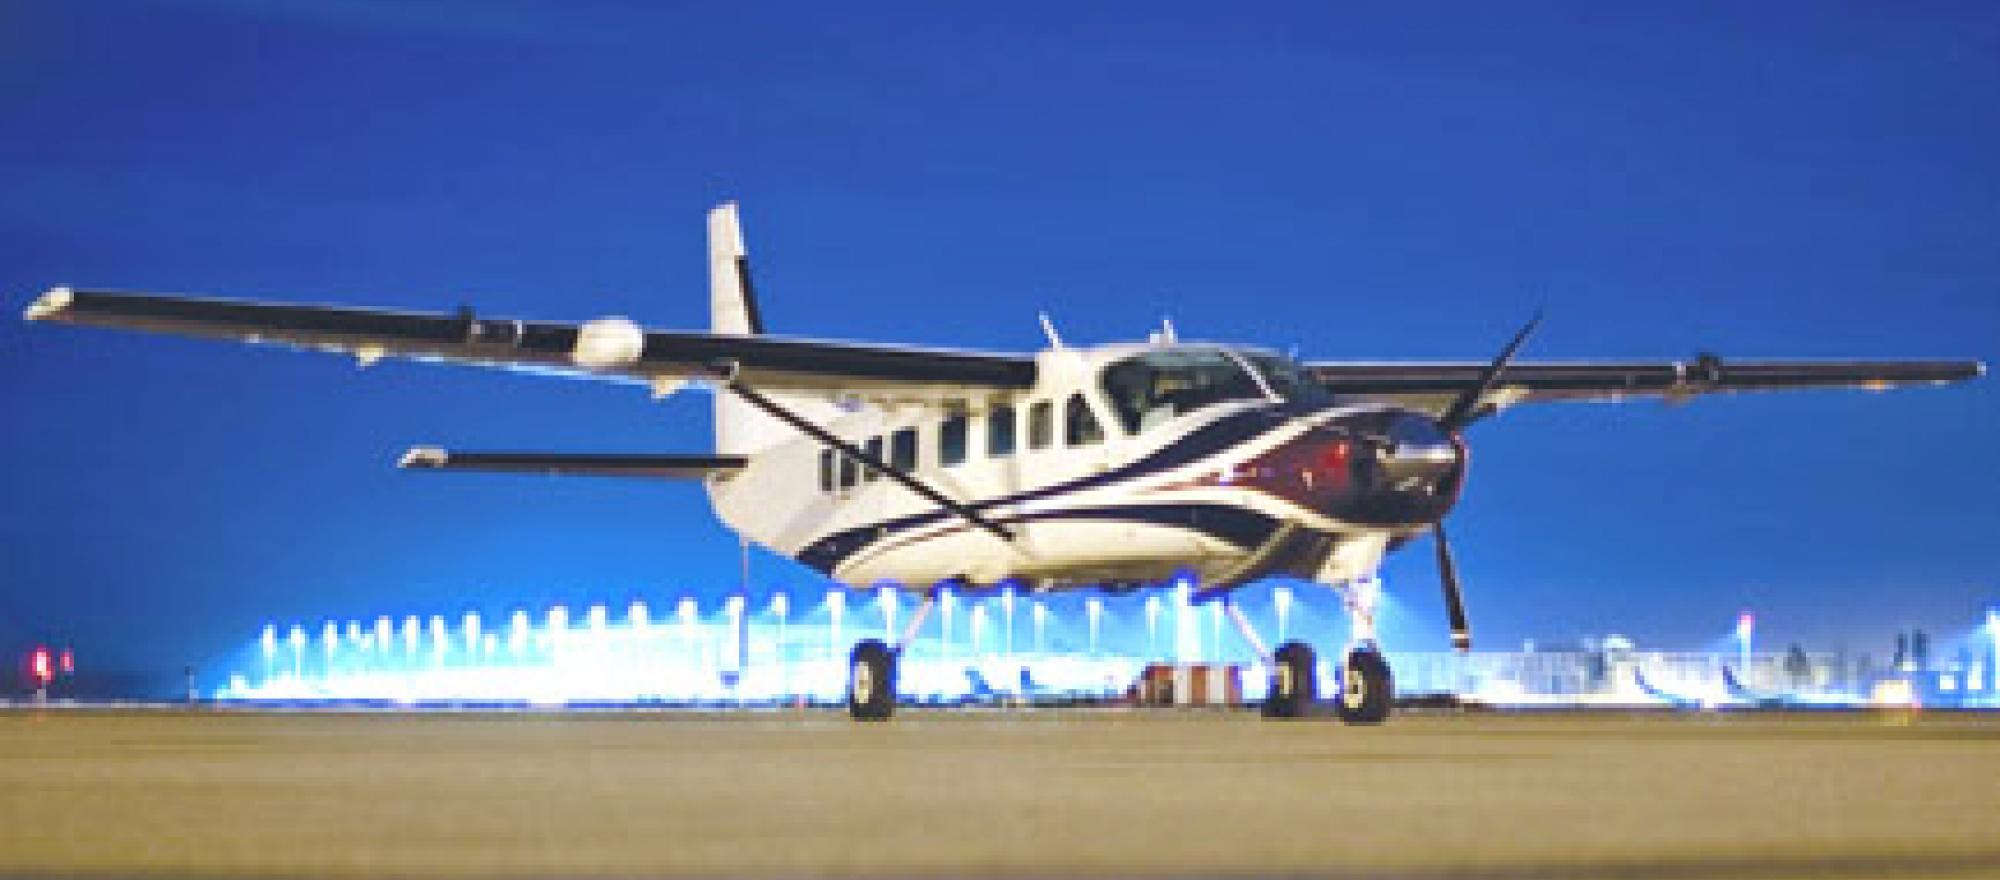 Looking for a bargain on a Cessna Caravan or other aircraft? You may find one